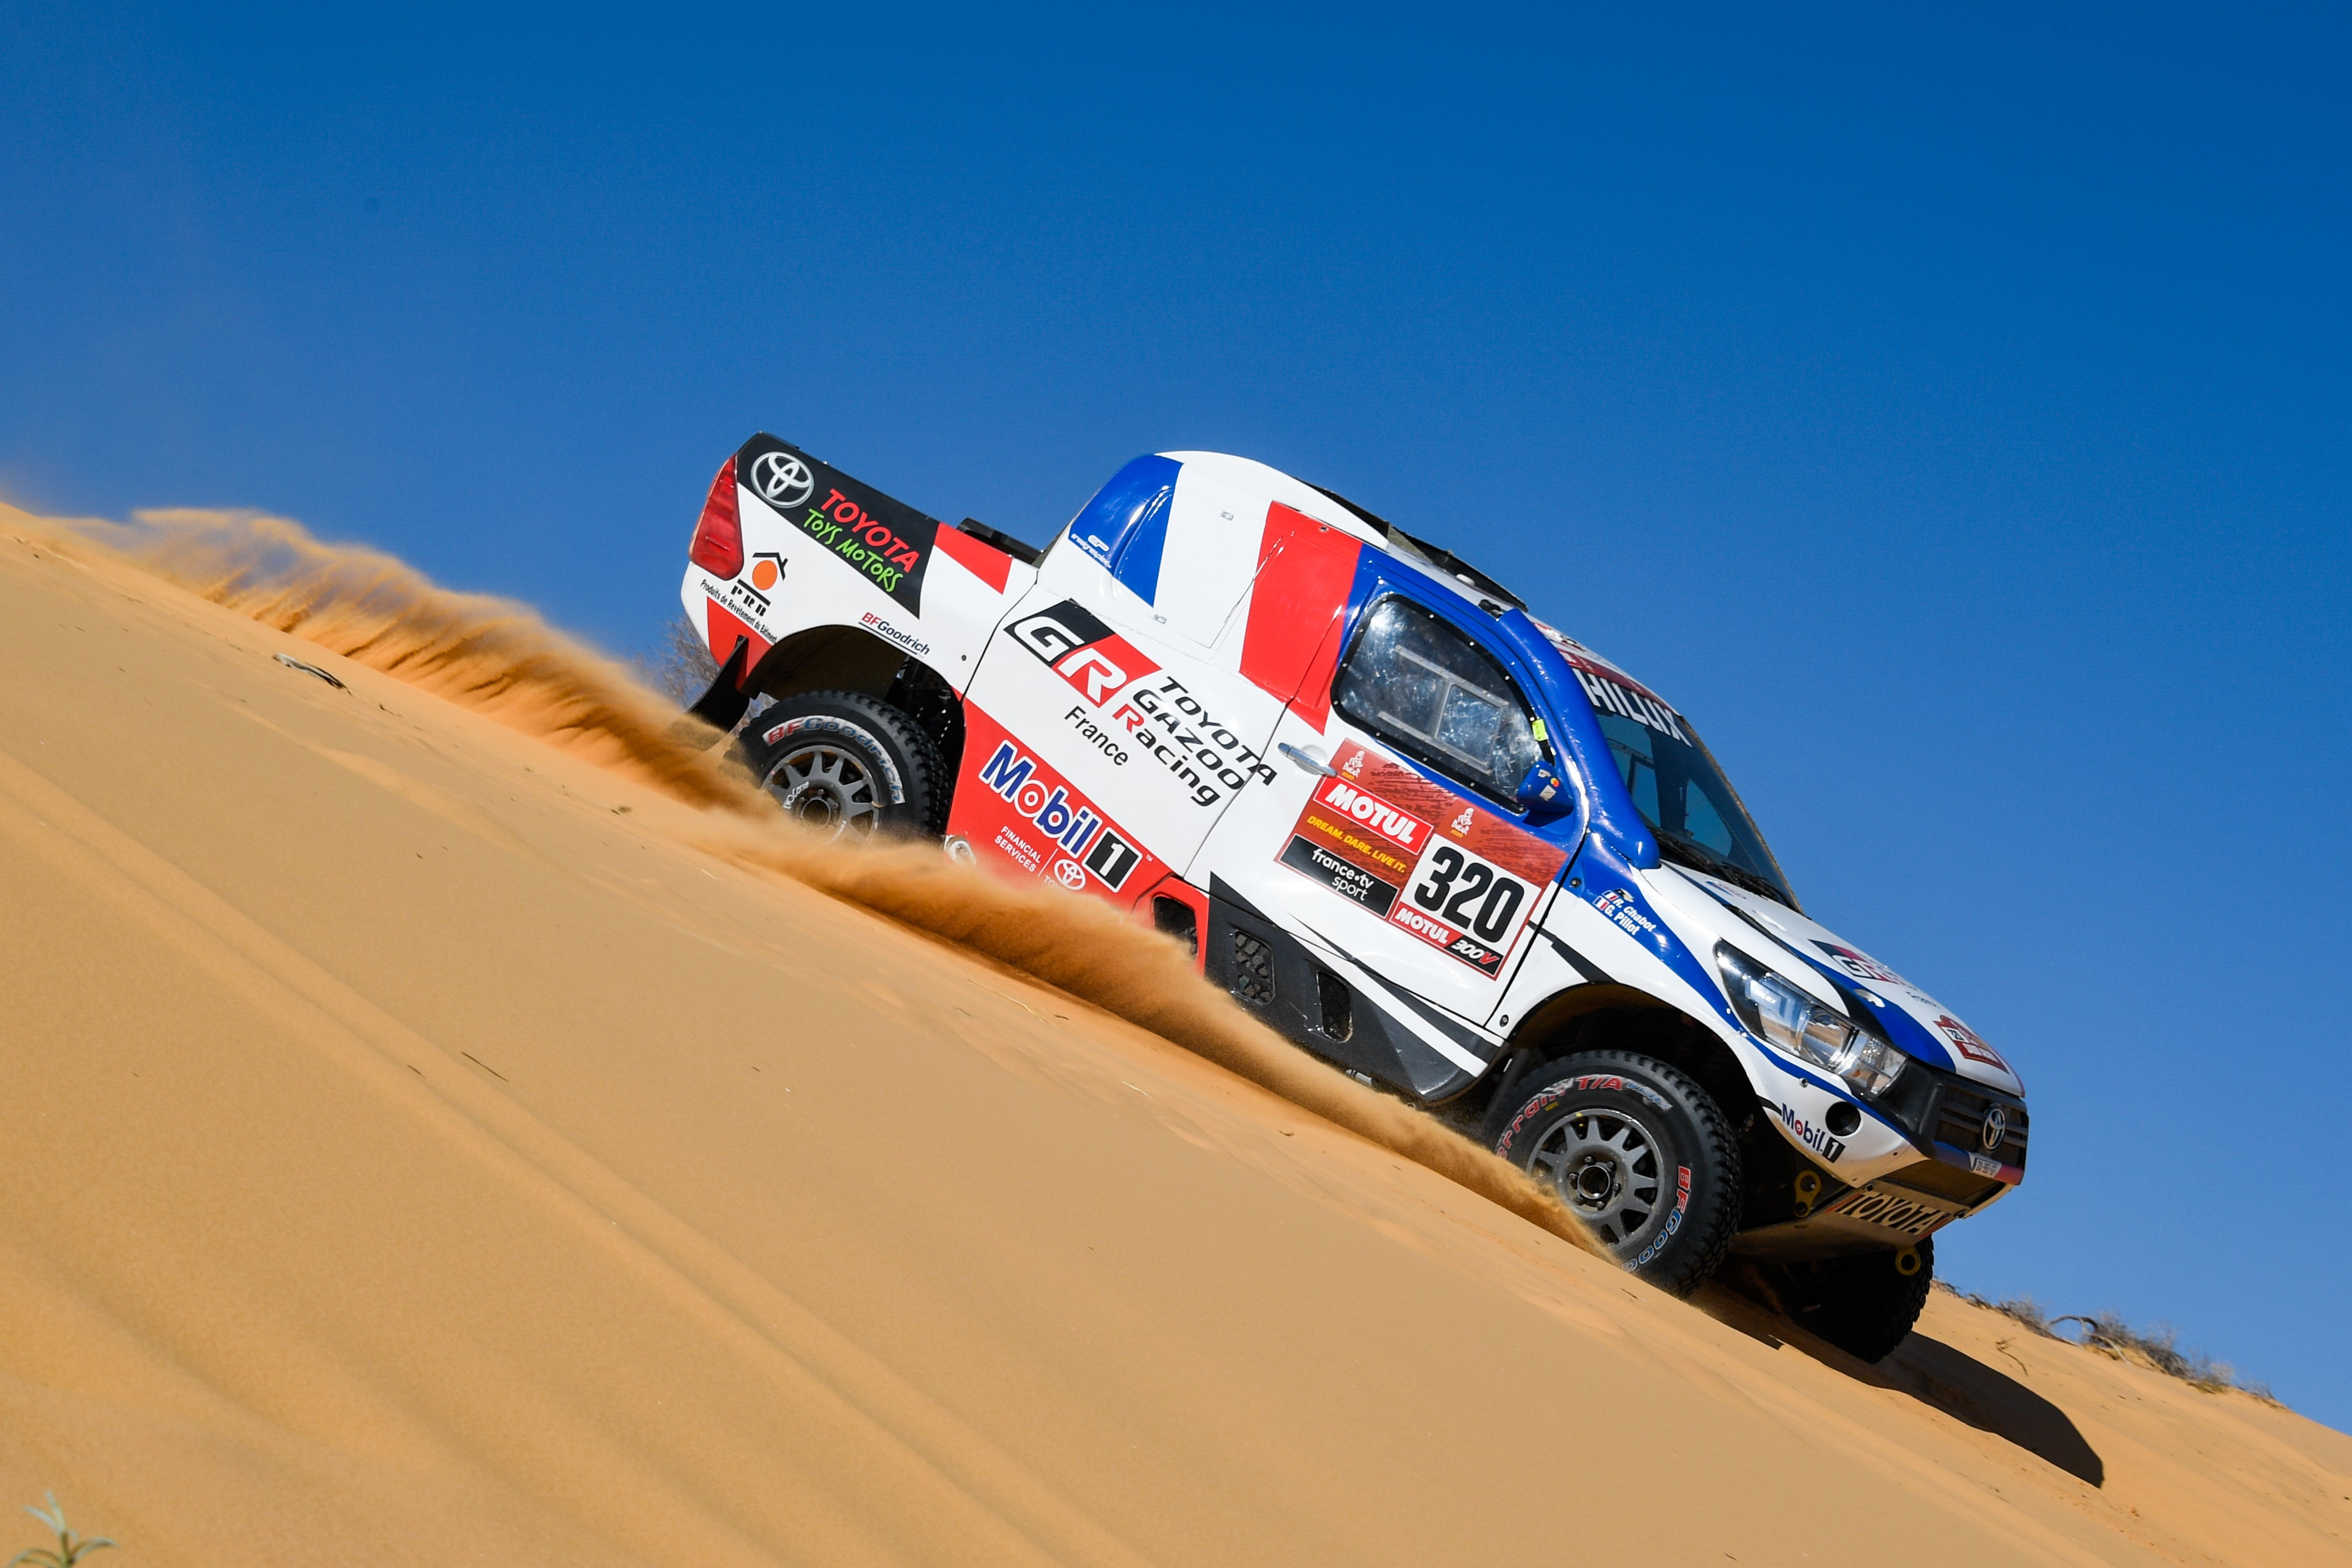 320 Chabot Ronan (fra), Pillot Gilles (fra), Toyota Hilux, Overdrive Toyota, Auto, Car, action during Stage 5 of the Dakar 2020 between Al Ula and Ha'il, 563 km - SS 353 km, in Saudi Arabia, on January 9, 2020 - Photo Eric Vargiolu / DPPI